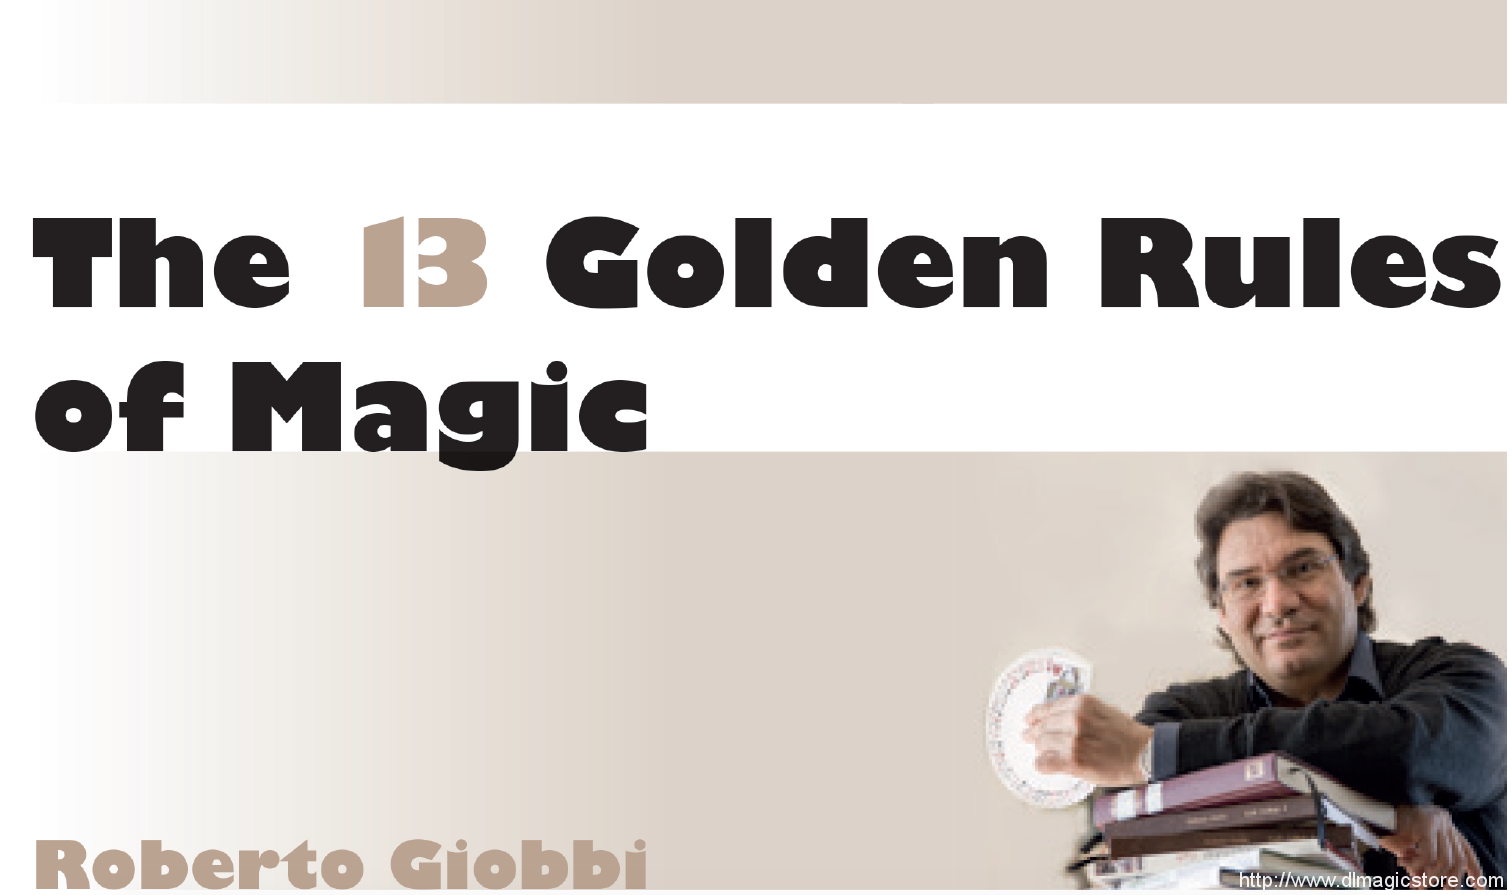 Roberto Giobbi – The 13 Golden Rules of Magic